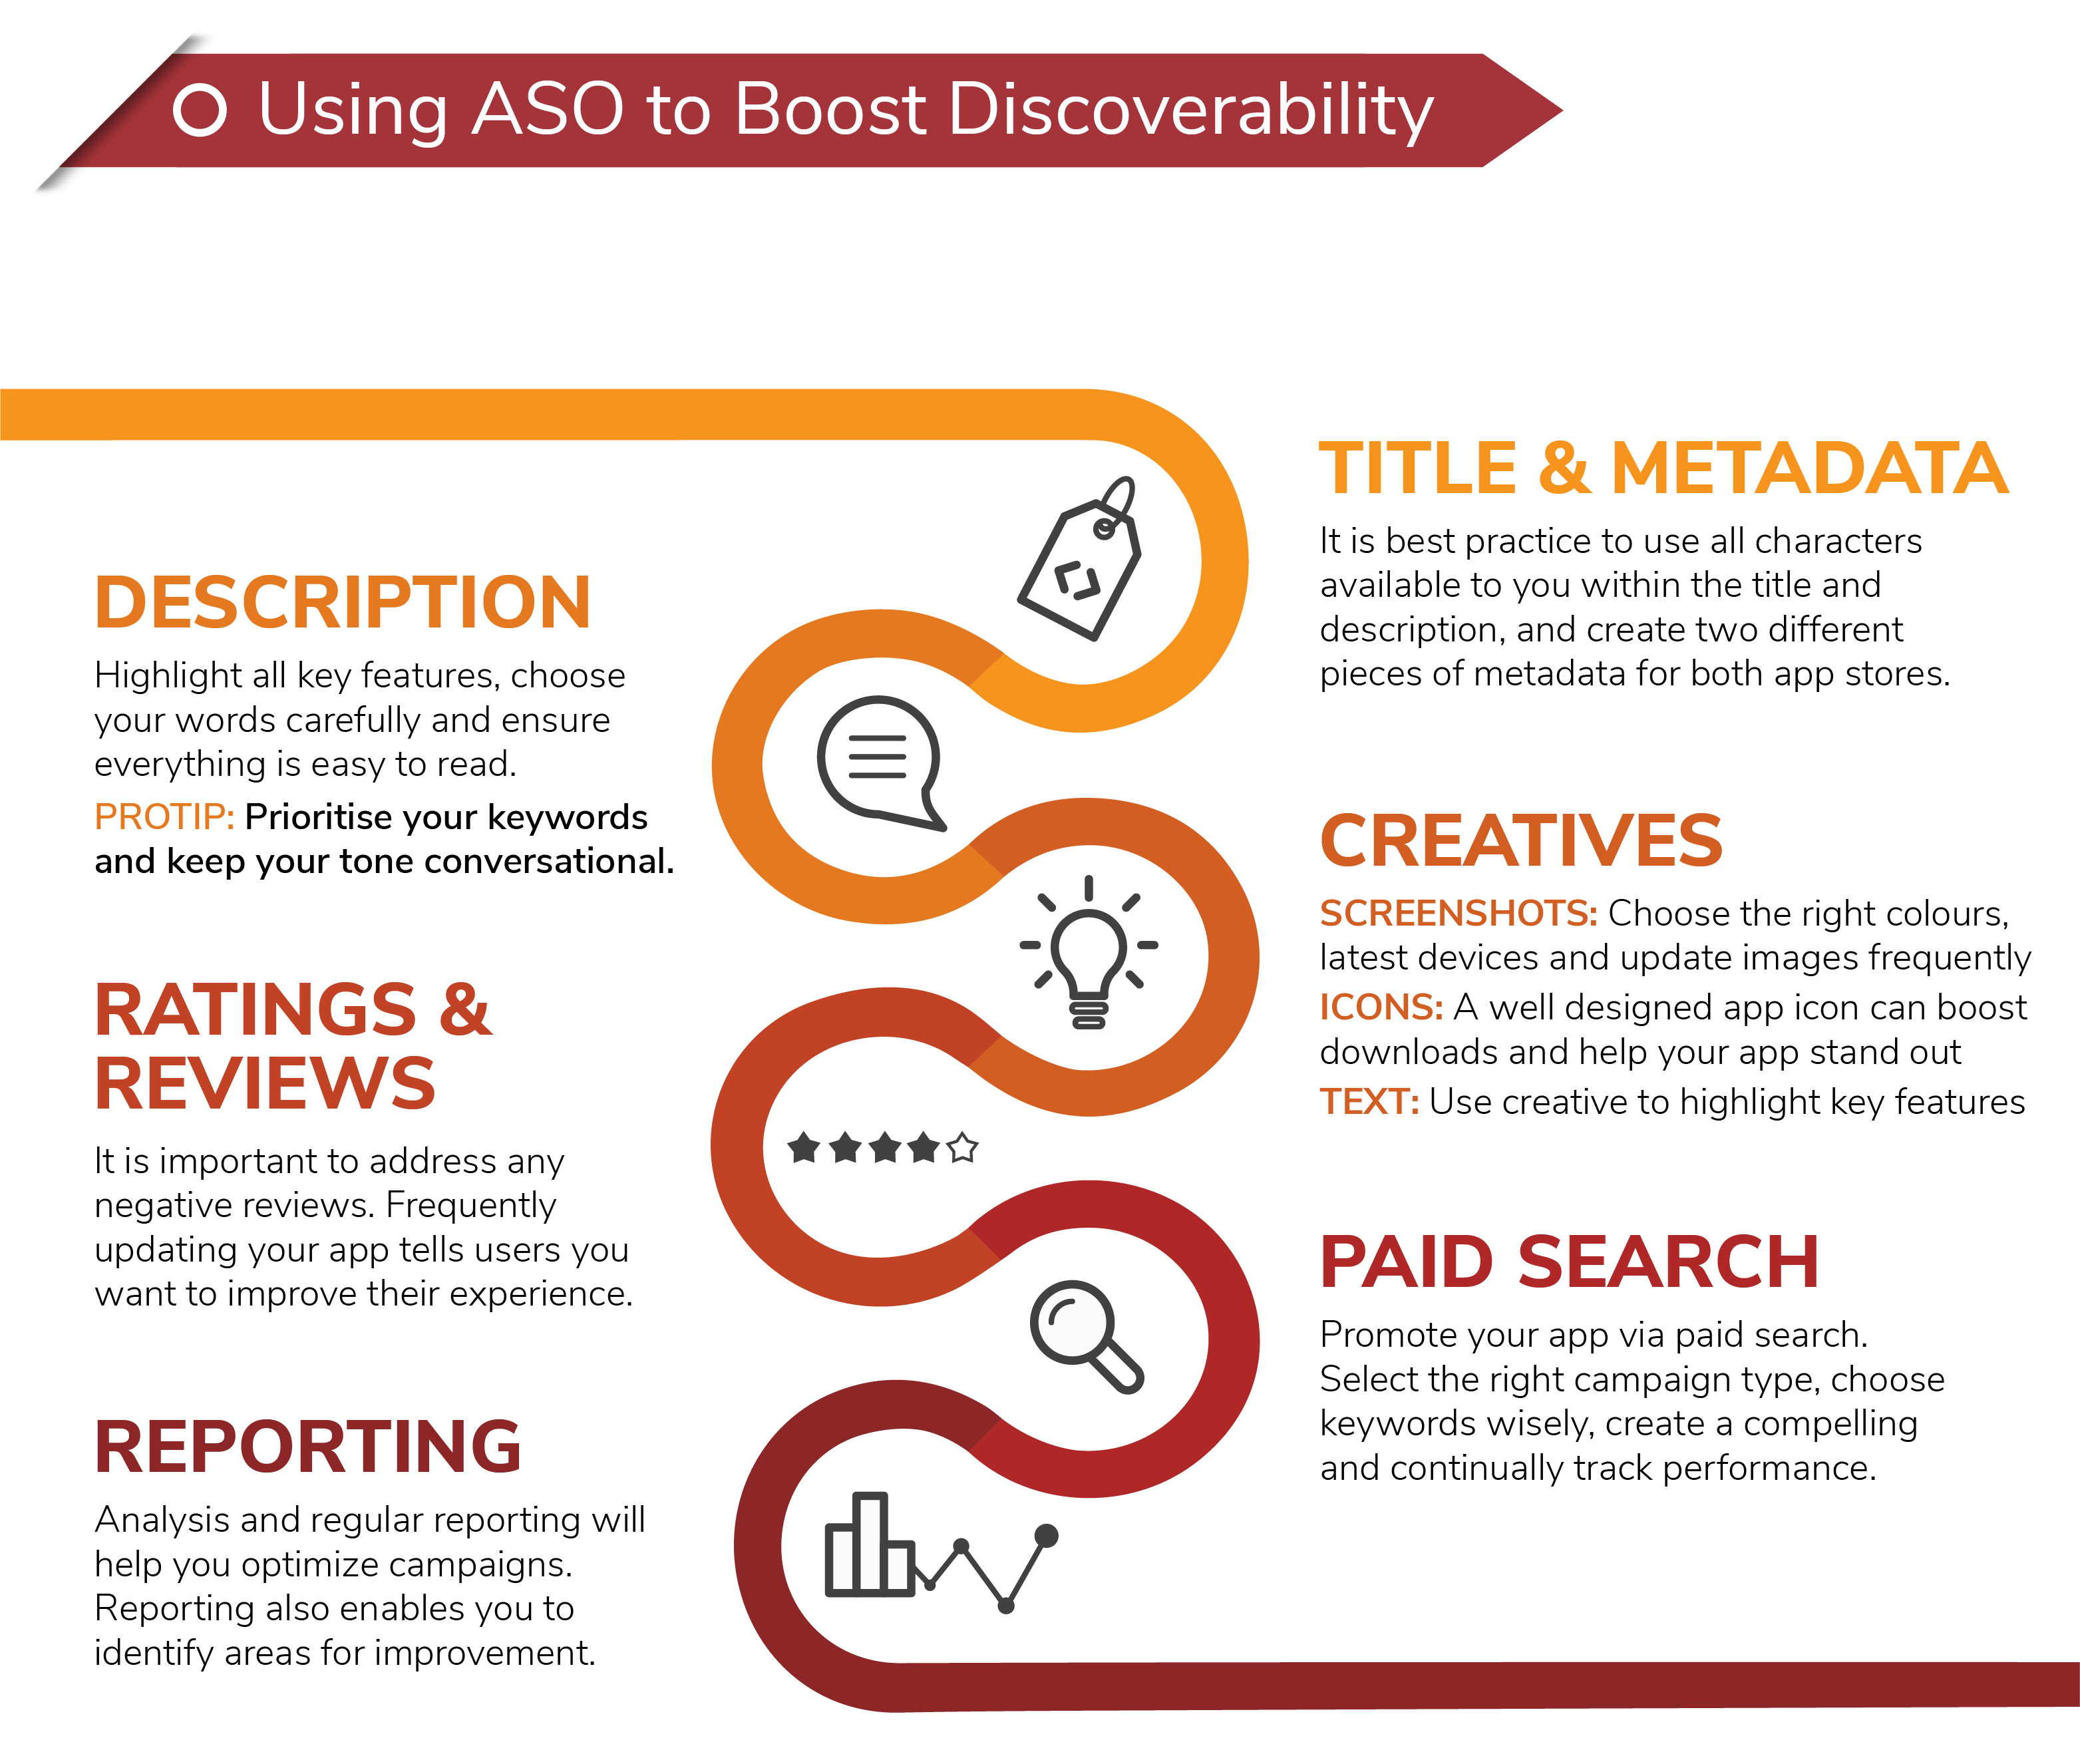 Using AS to Boost Discoverability